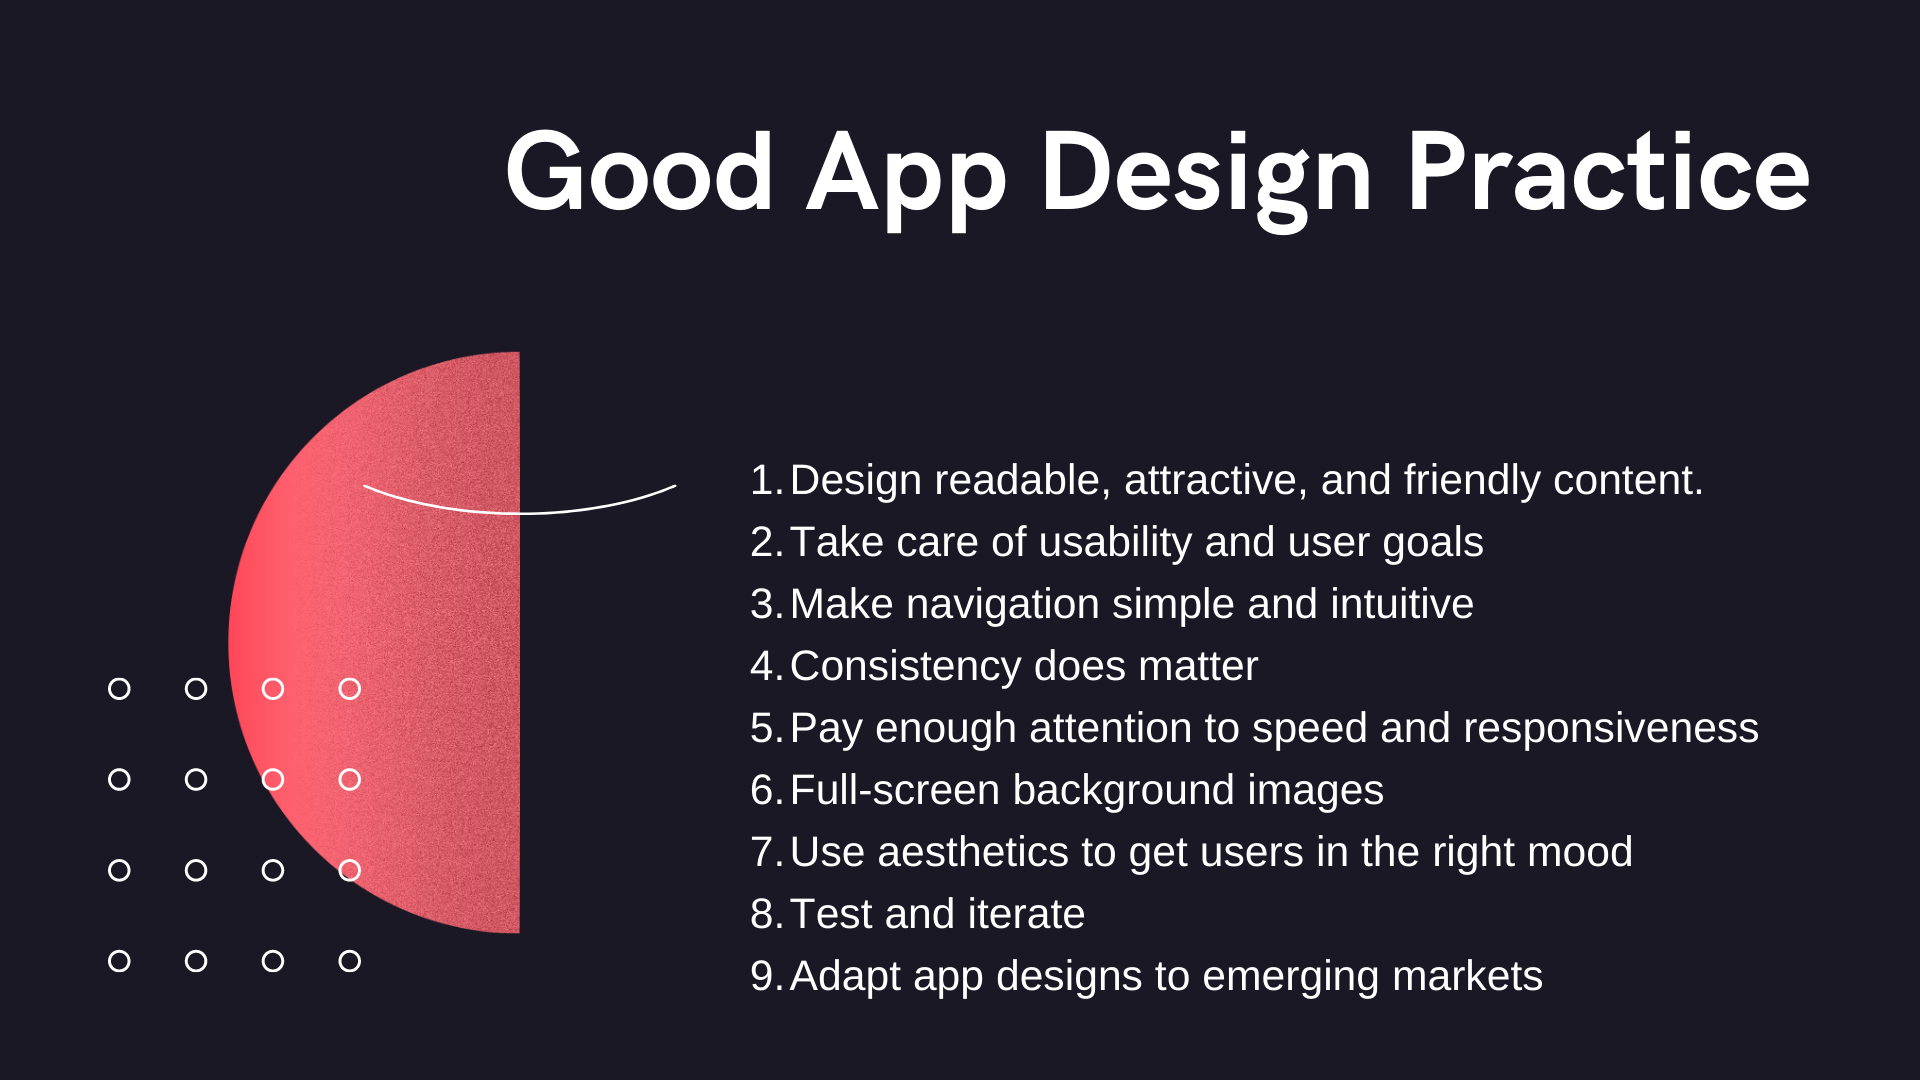 Which is a Good App Design Practice?